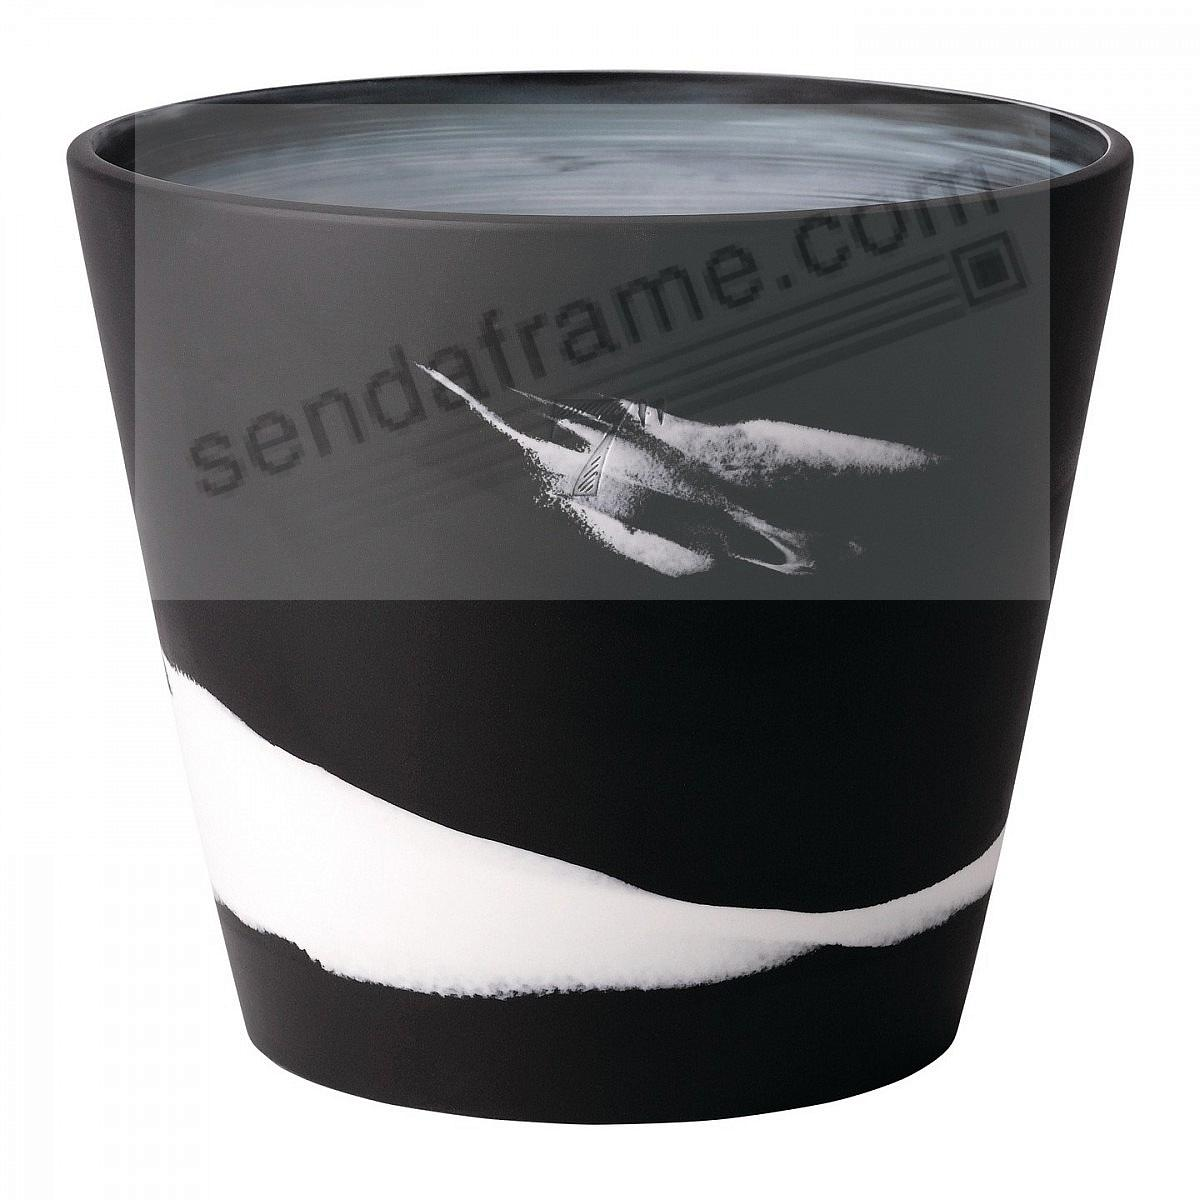 BURLINGTON PLANTER POT Black+White 7in by Wedgwood®